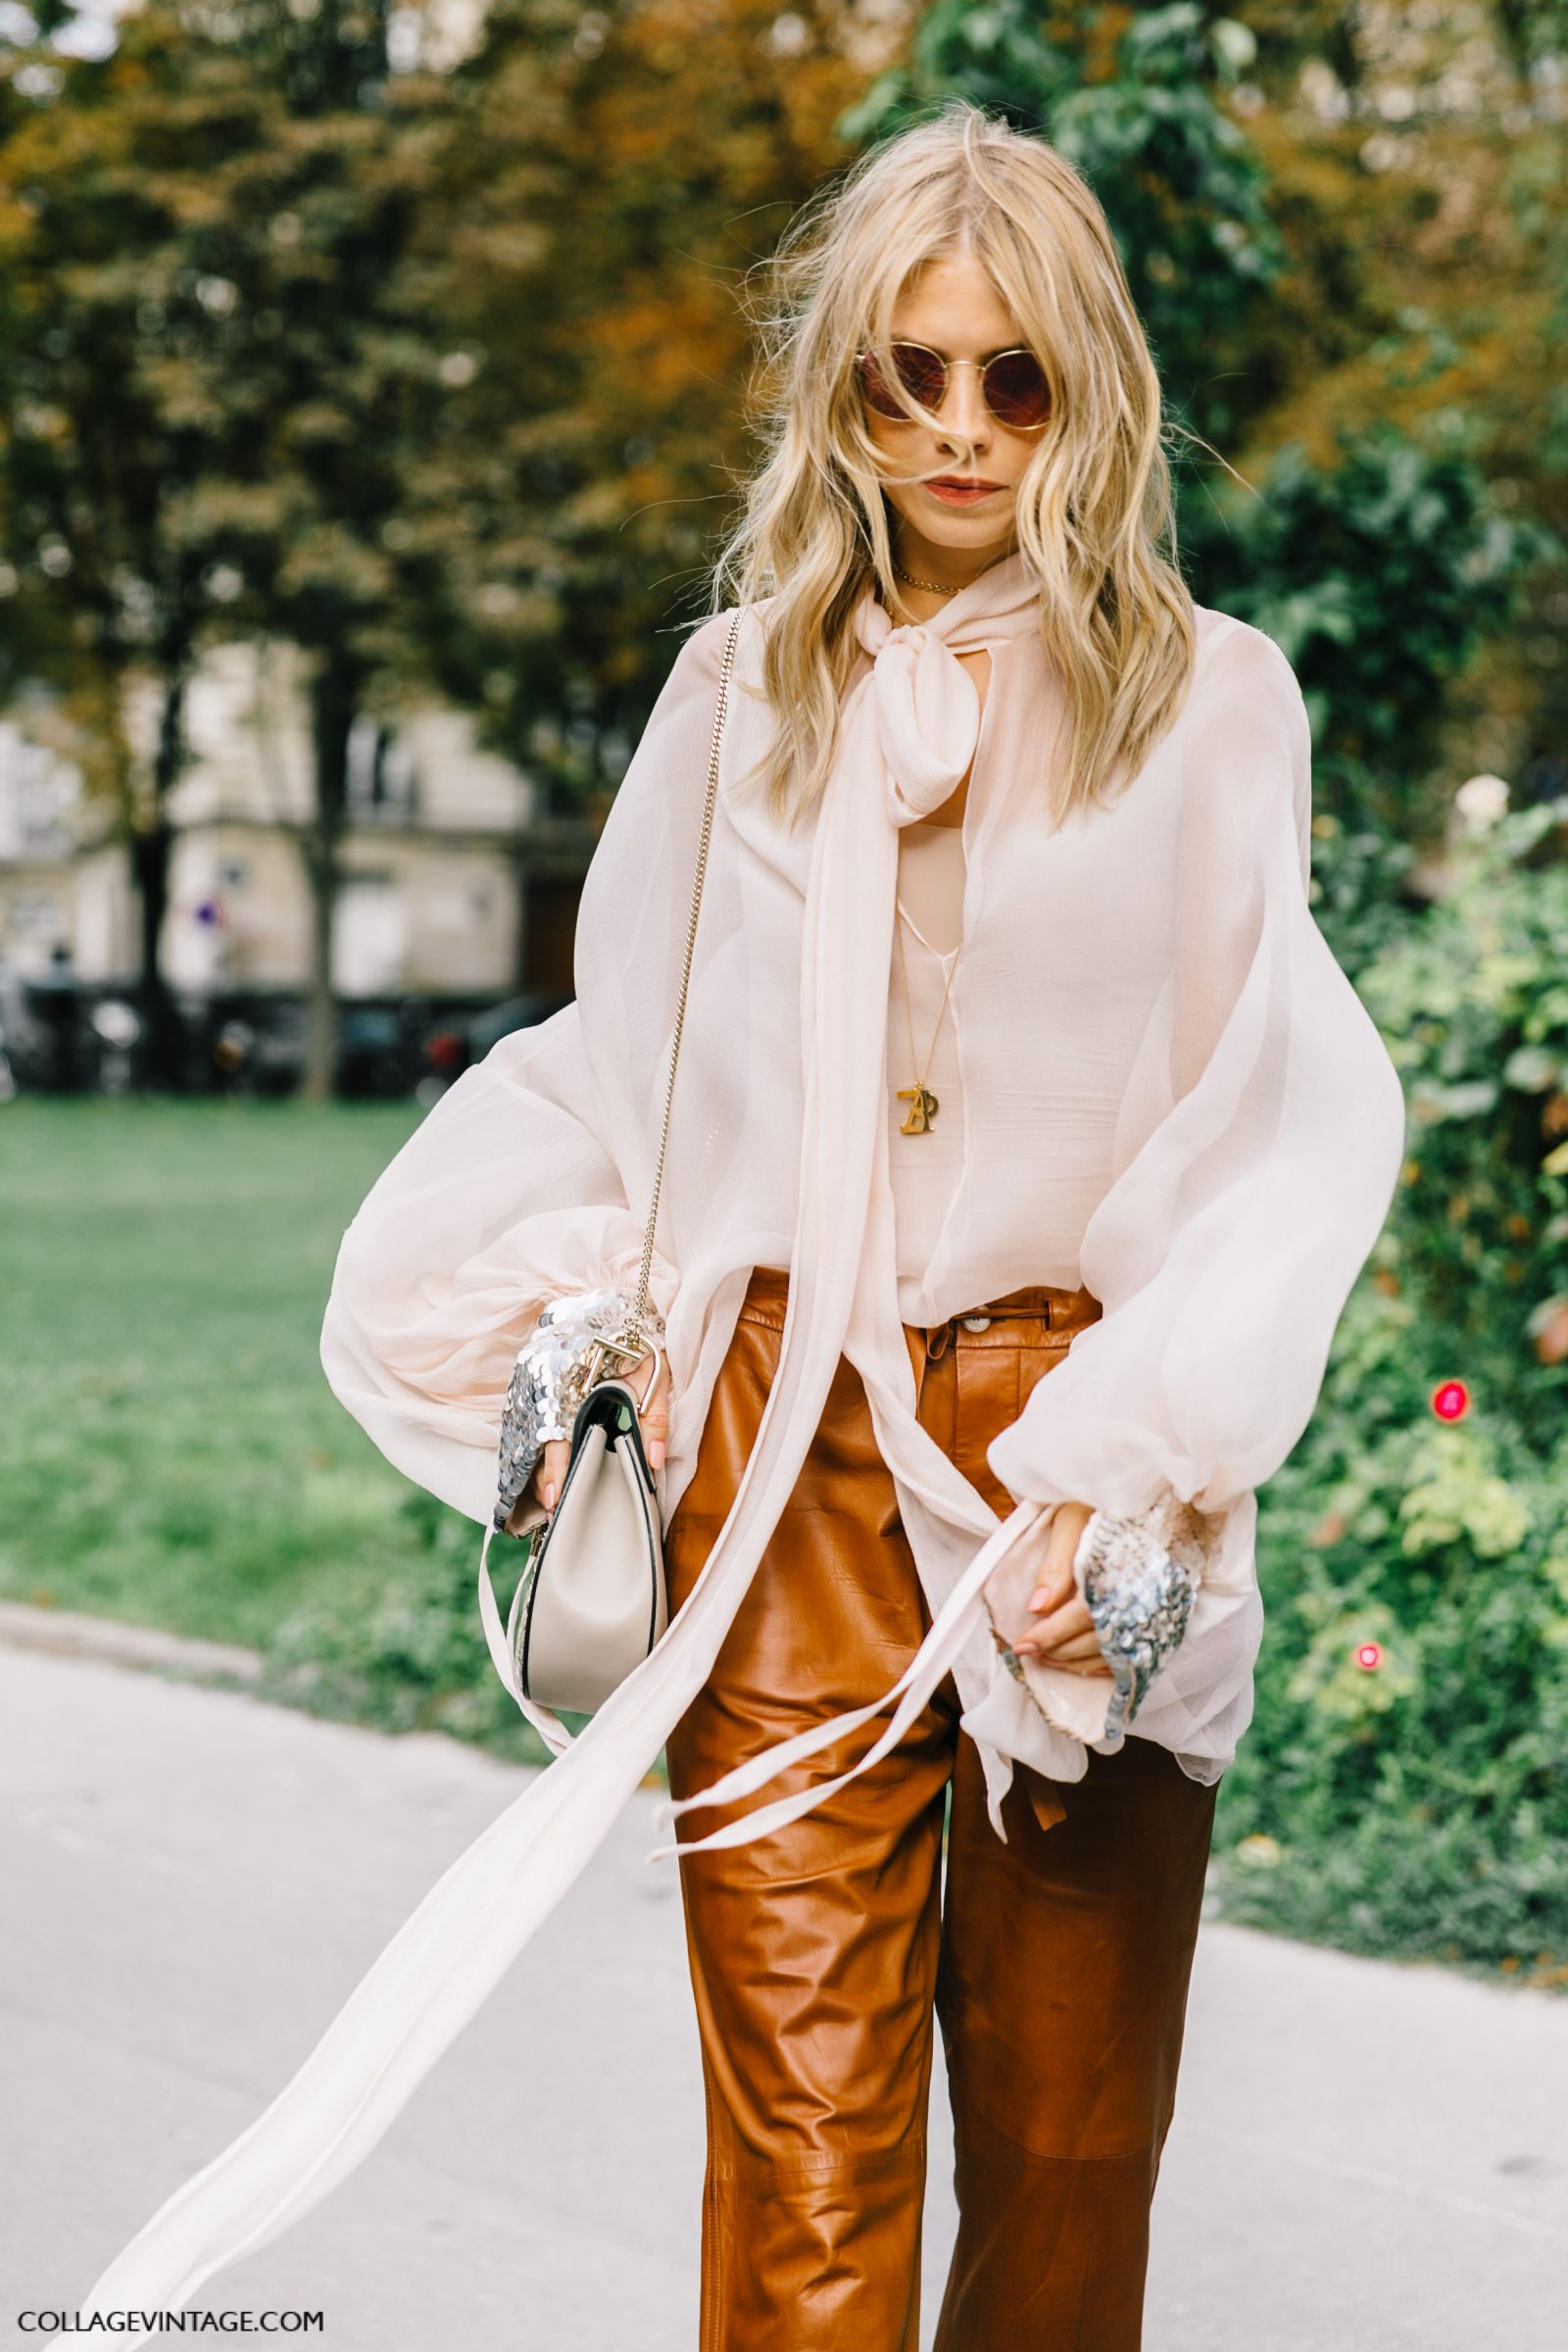 pfw-paris_fashion_week_ss17-street_style-outfits-collage_vintage-chloe-carven-balmain-barbara_bui-38